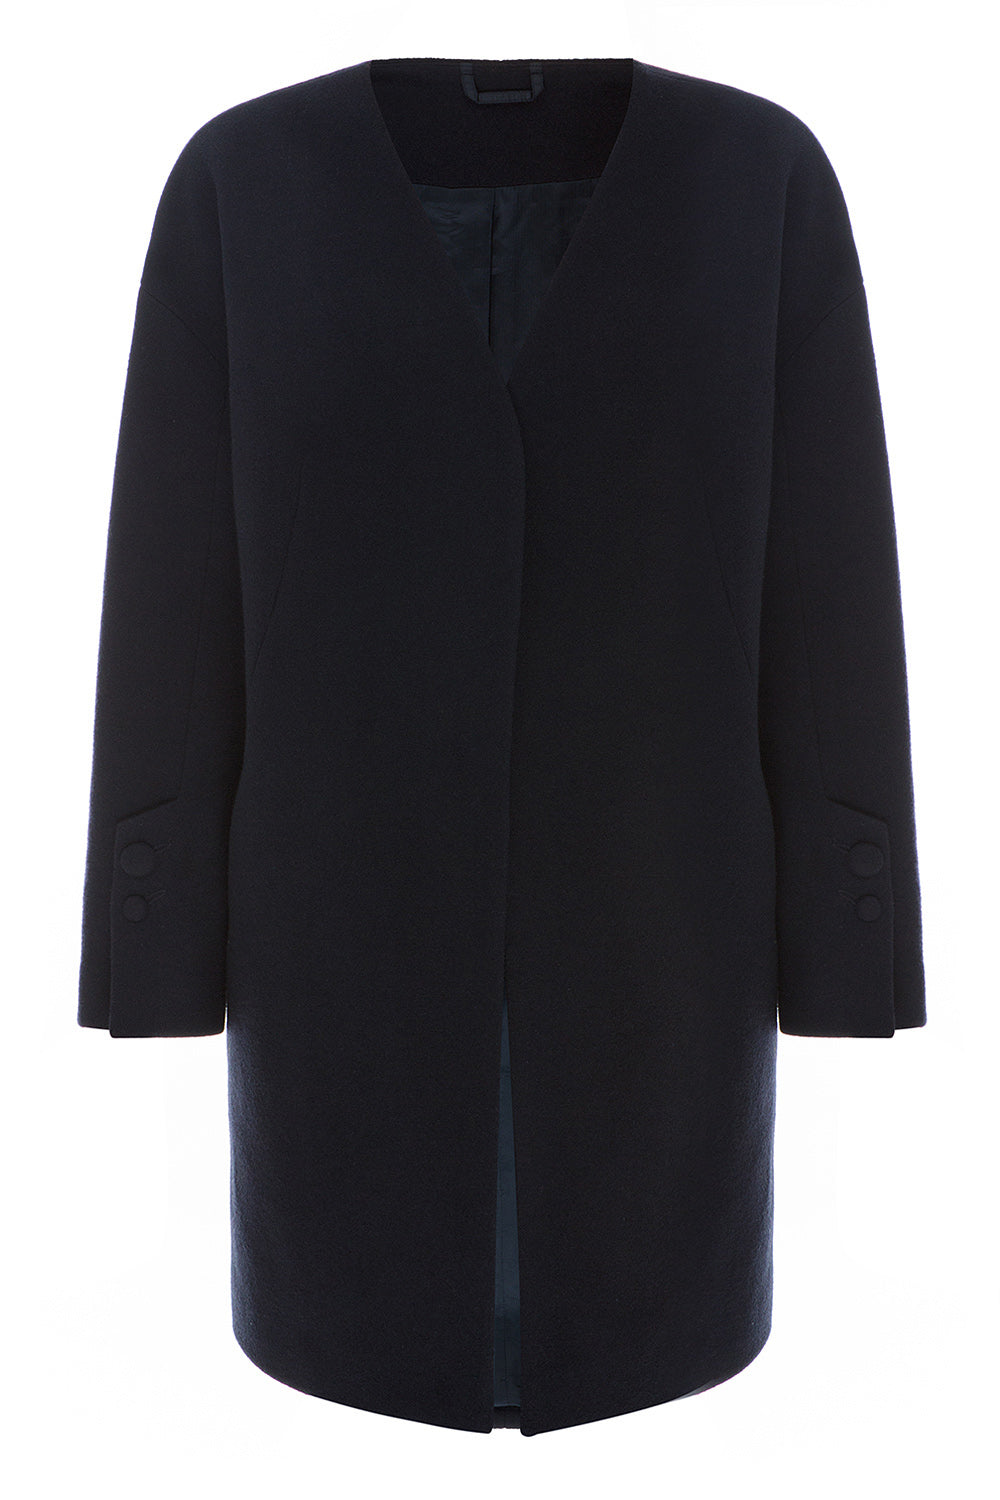 Dark Navy Wool Coat